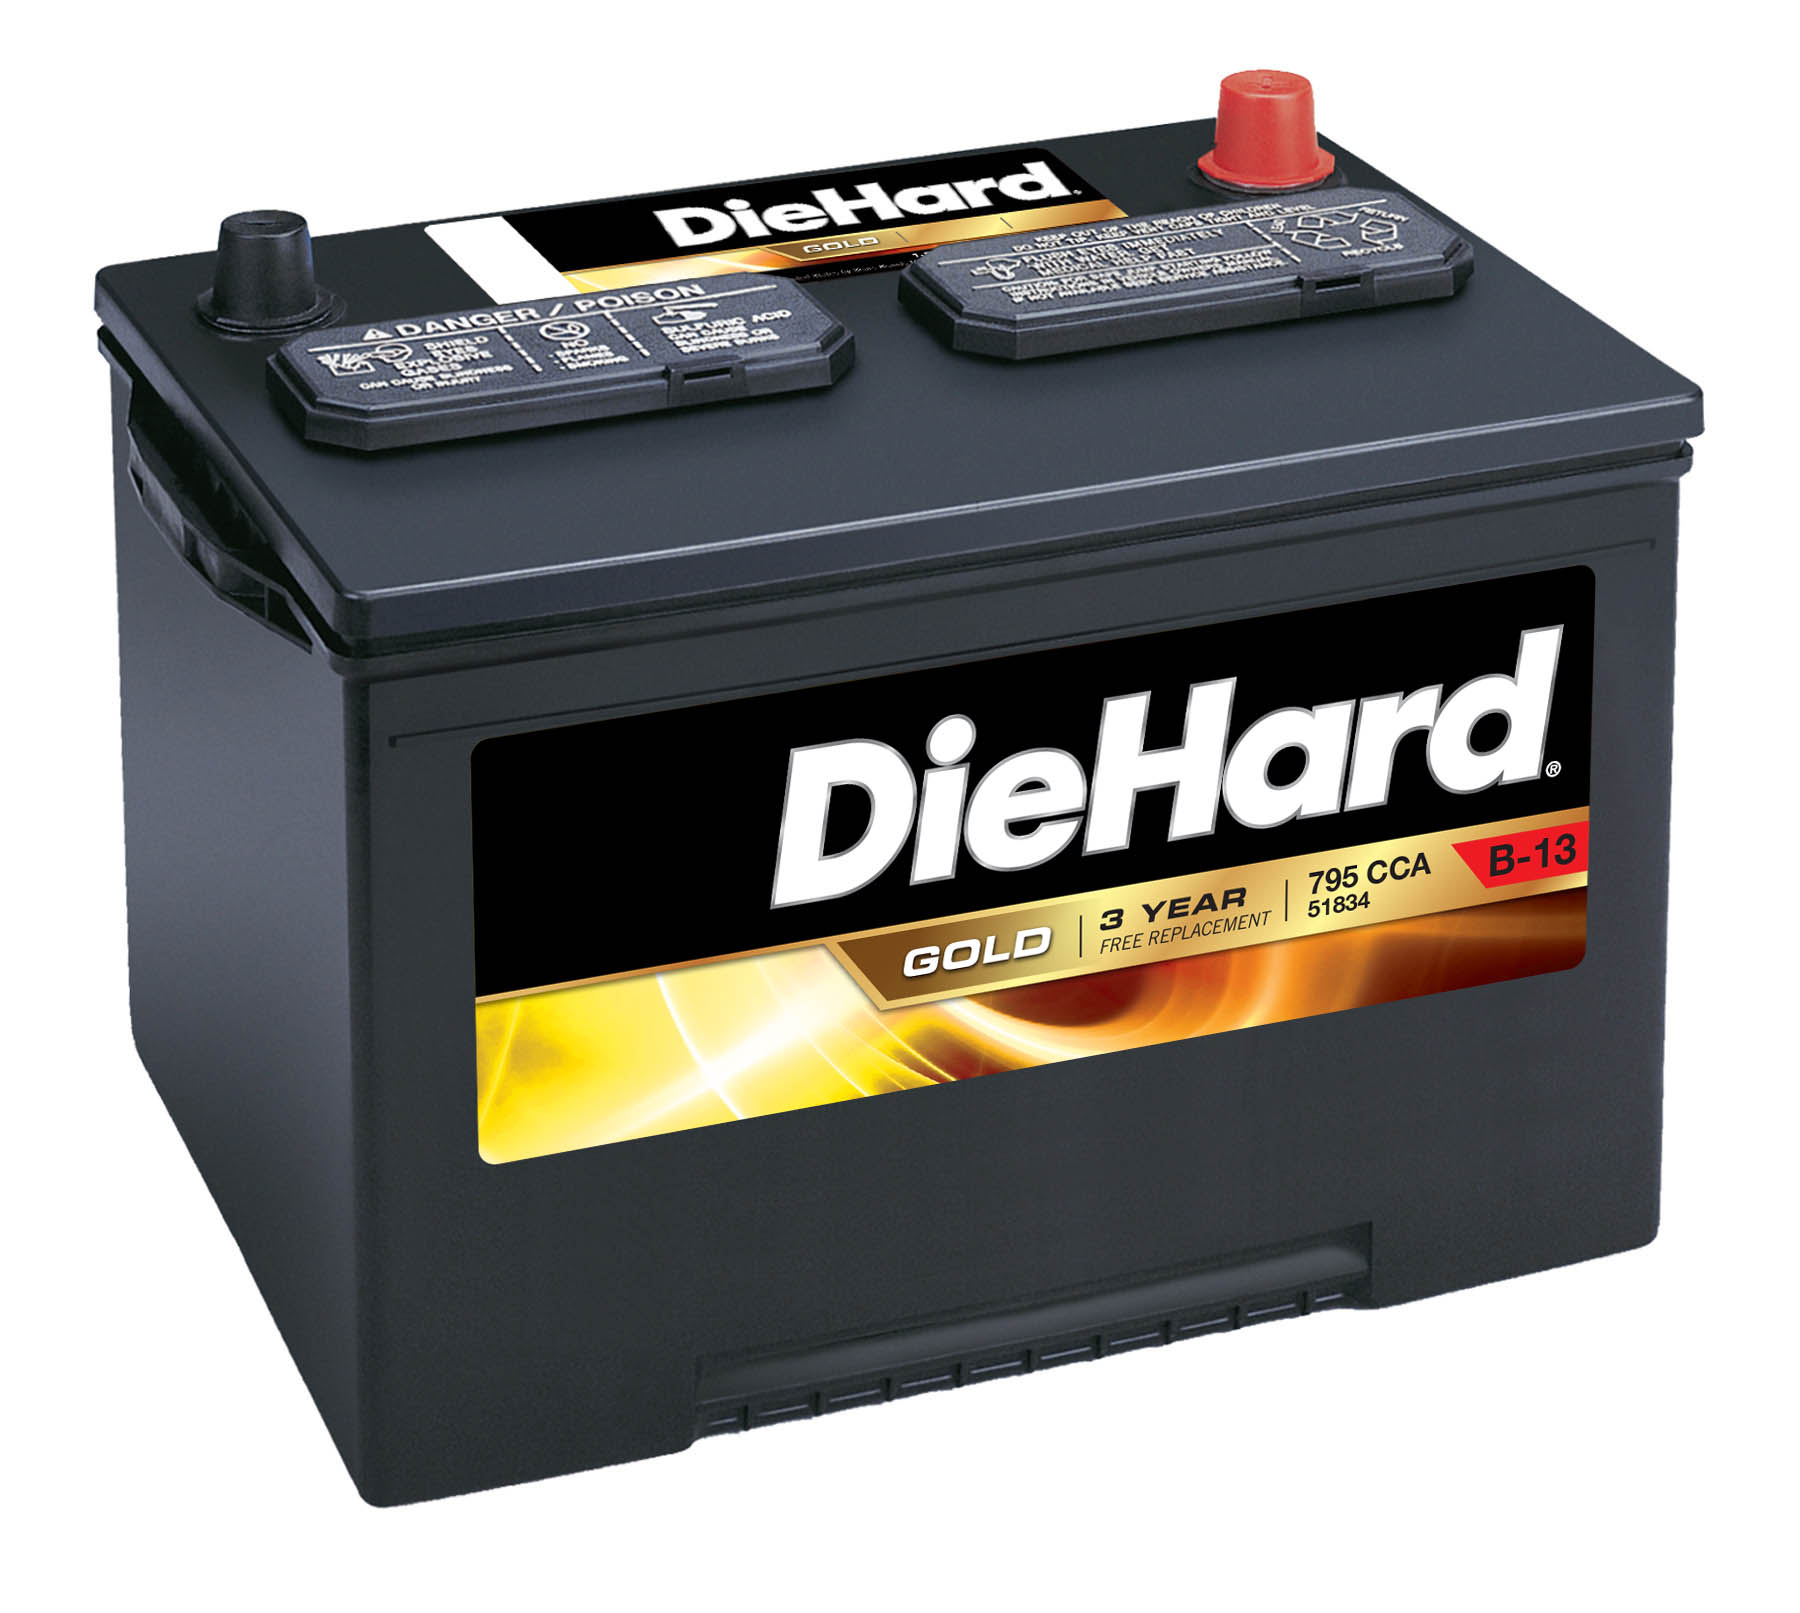 Diehard Gold Automotive Battery - Group Size Jc-34 With Exchange